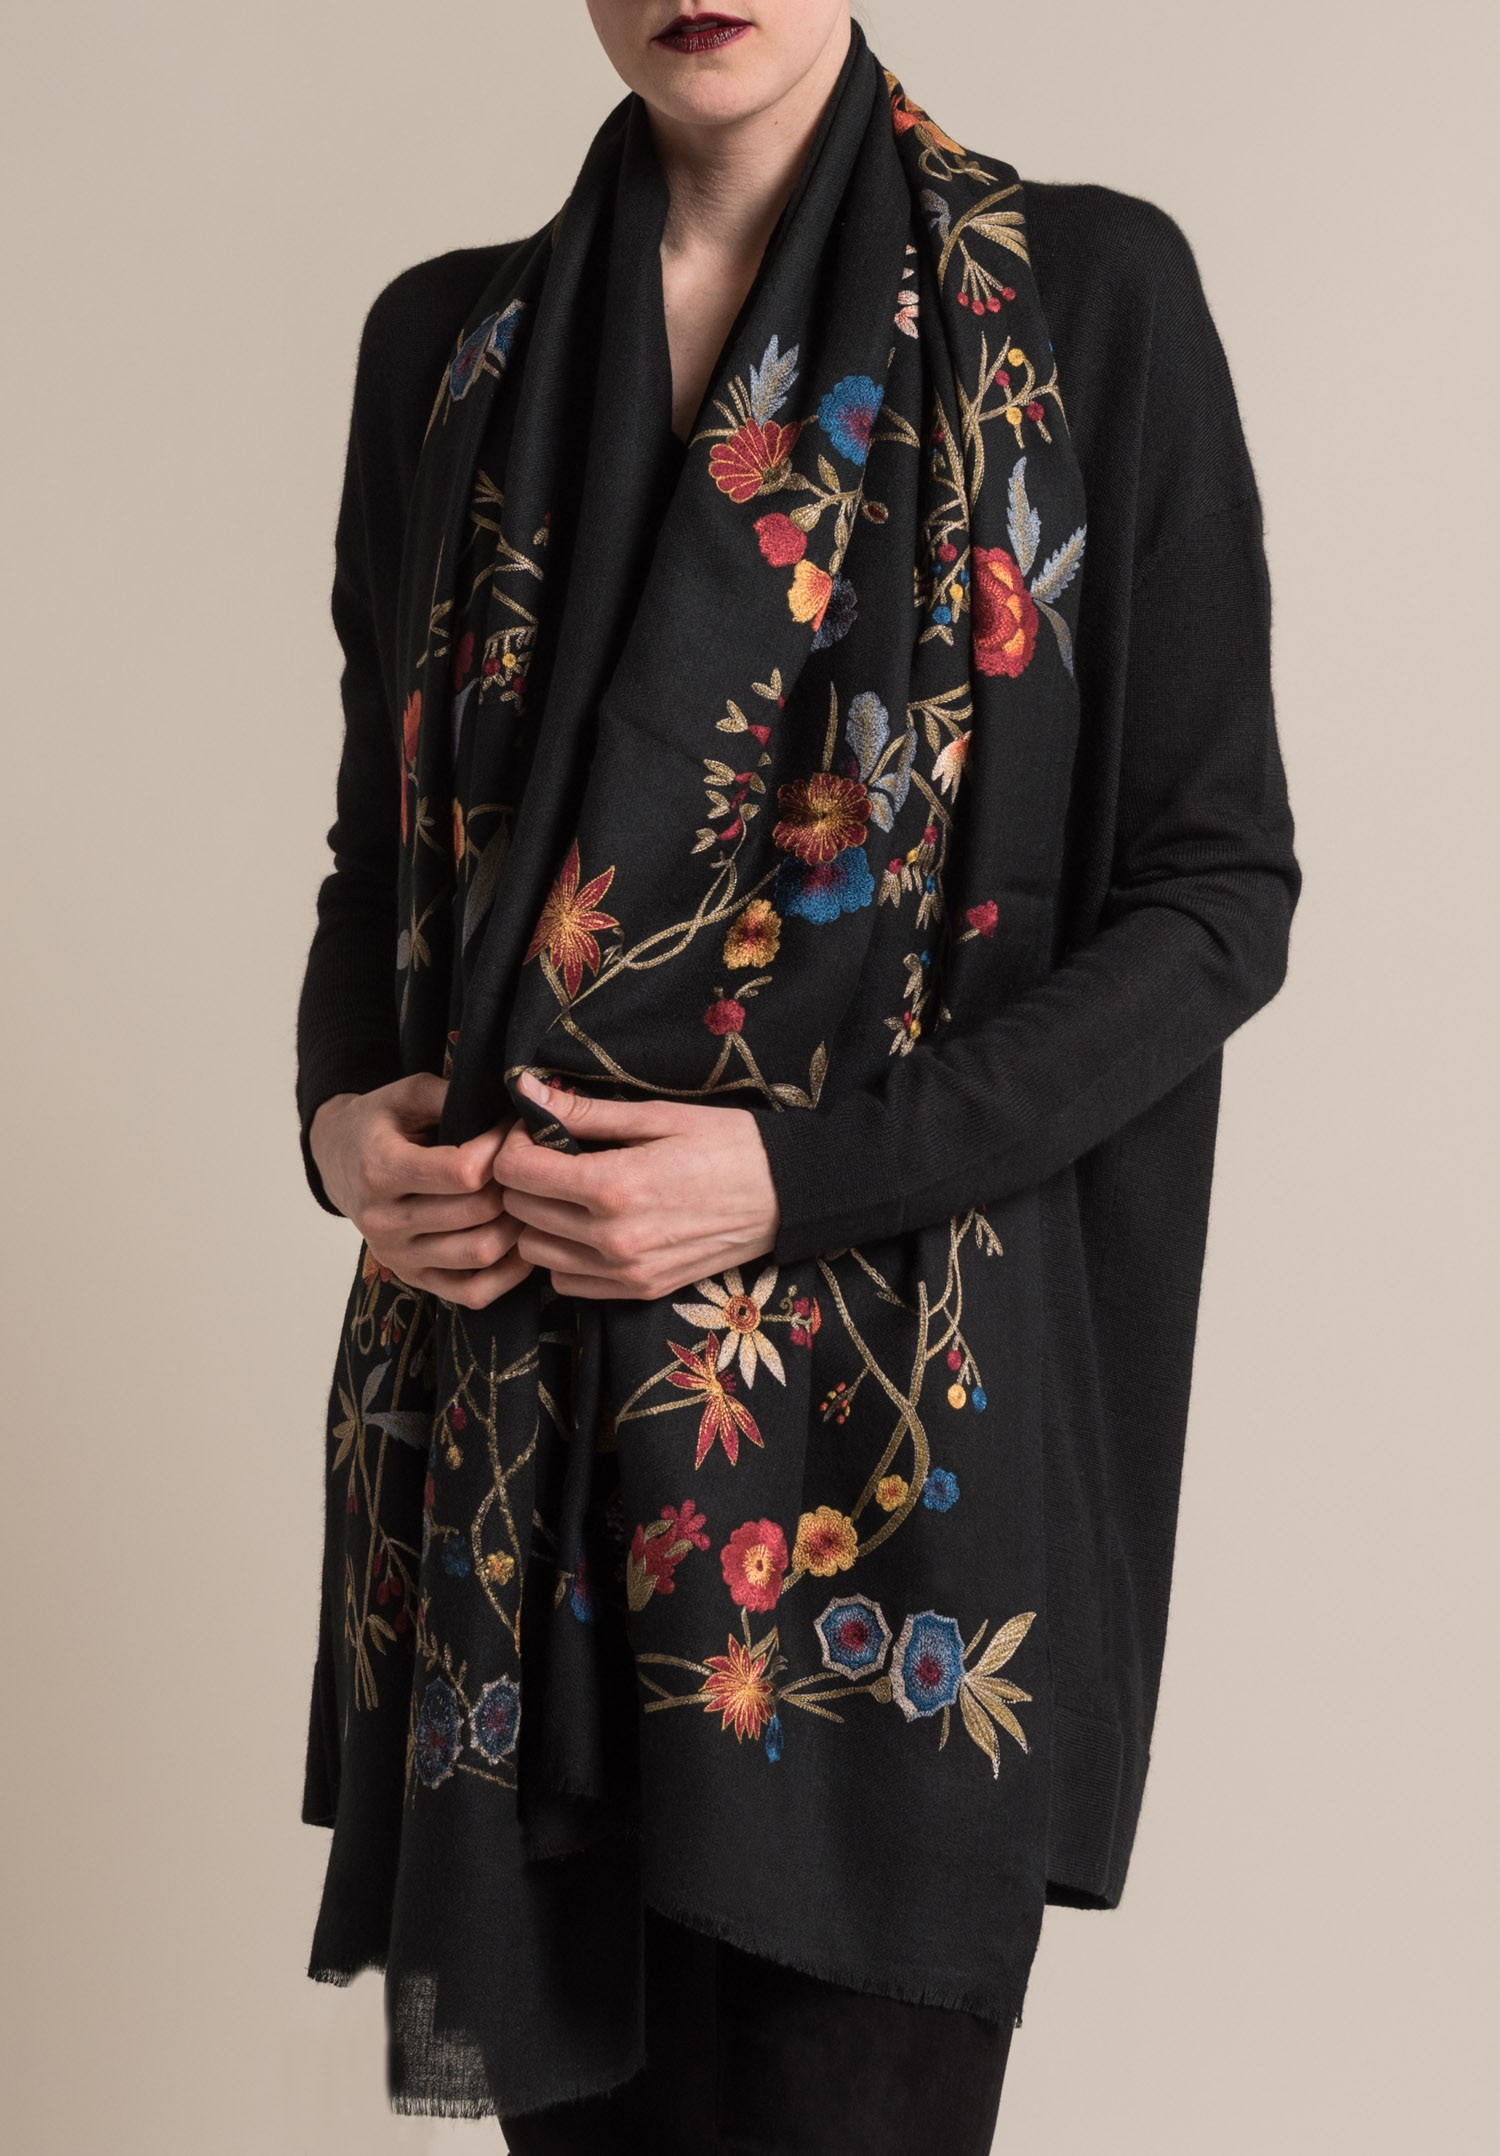 Janavi Cashmere Floral Embroidered Scarf In Black Santa